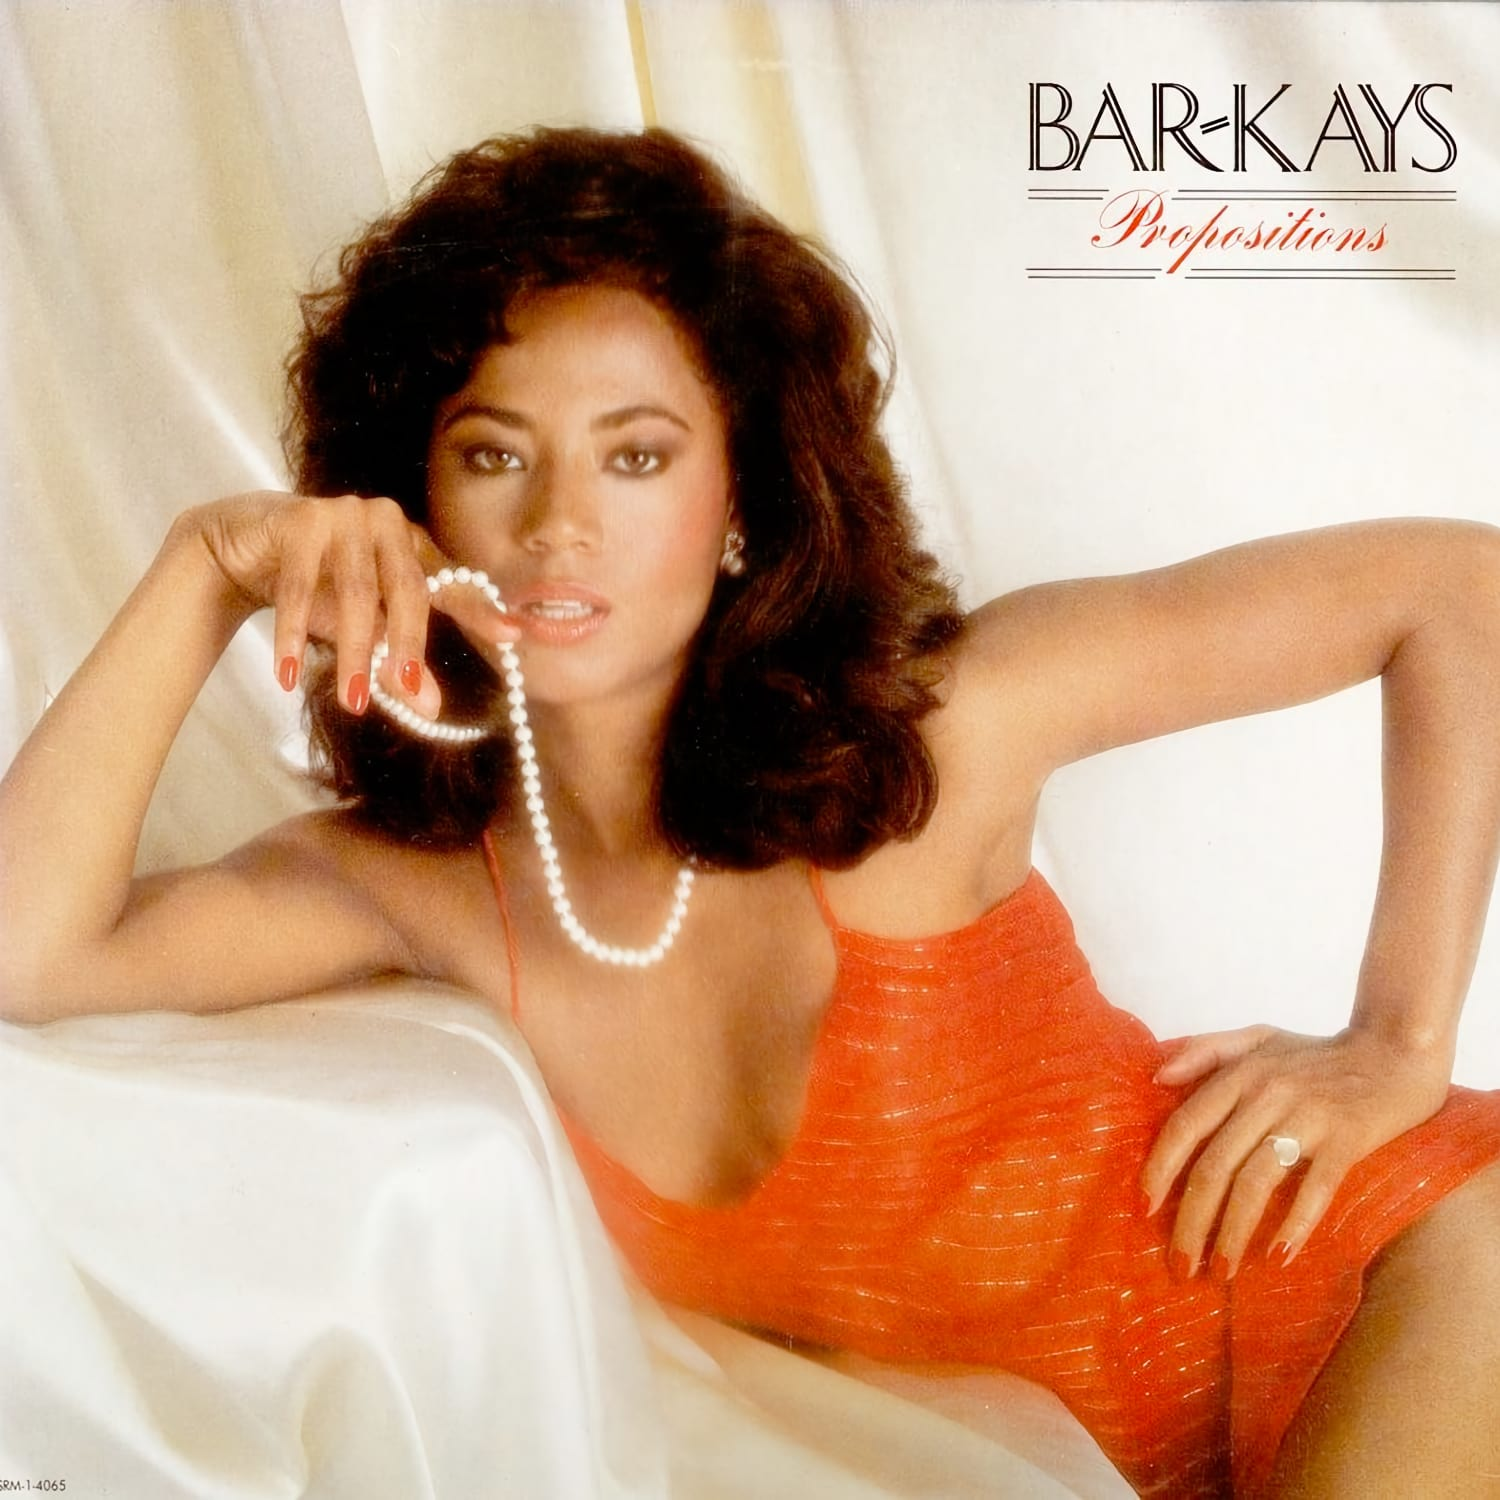 The Bar-Kays - Propositions